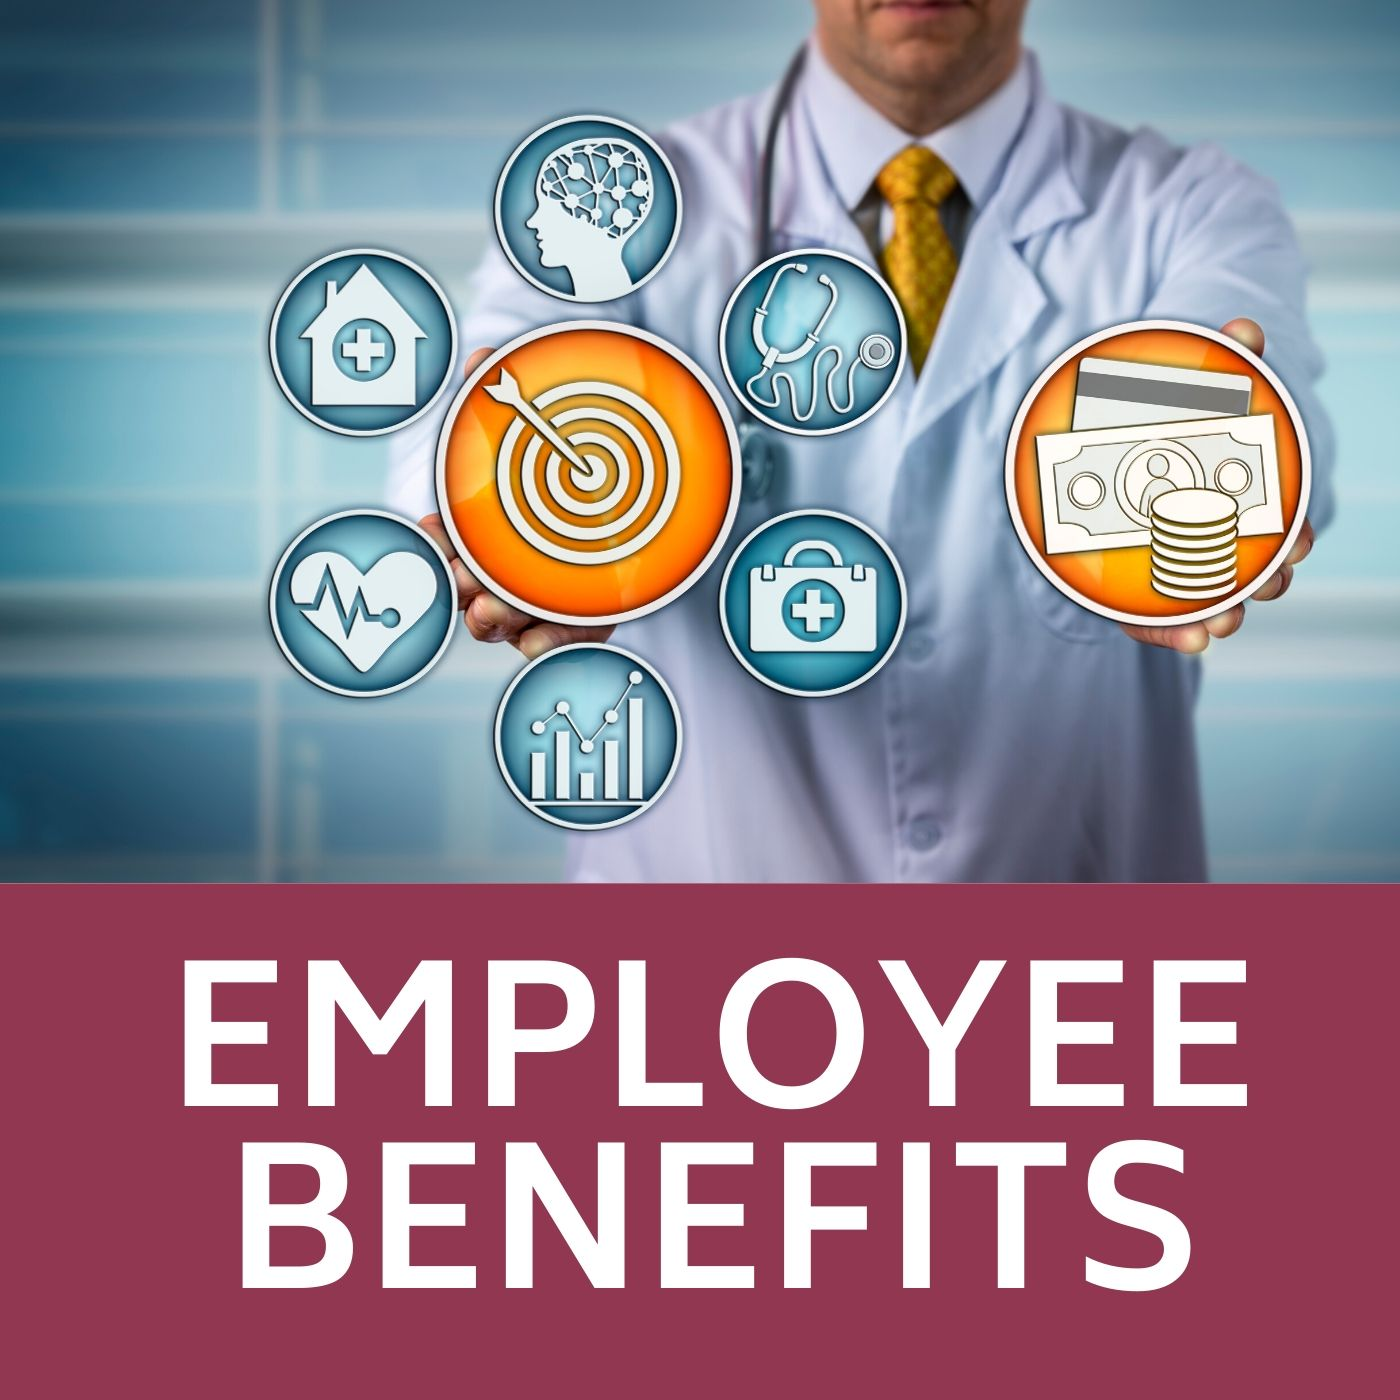 Image of doctor with icons of employee benefits that redirects to the employee benefist webpage.